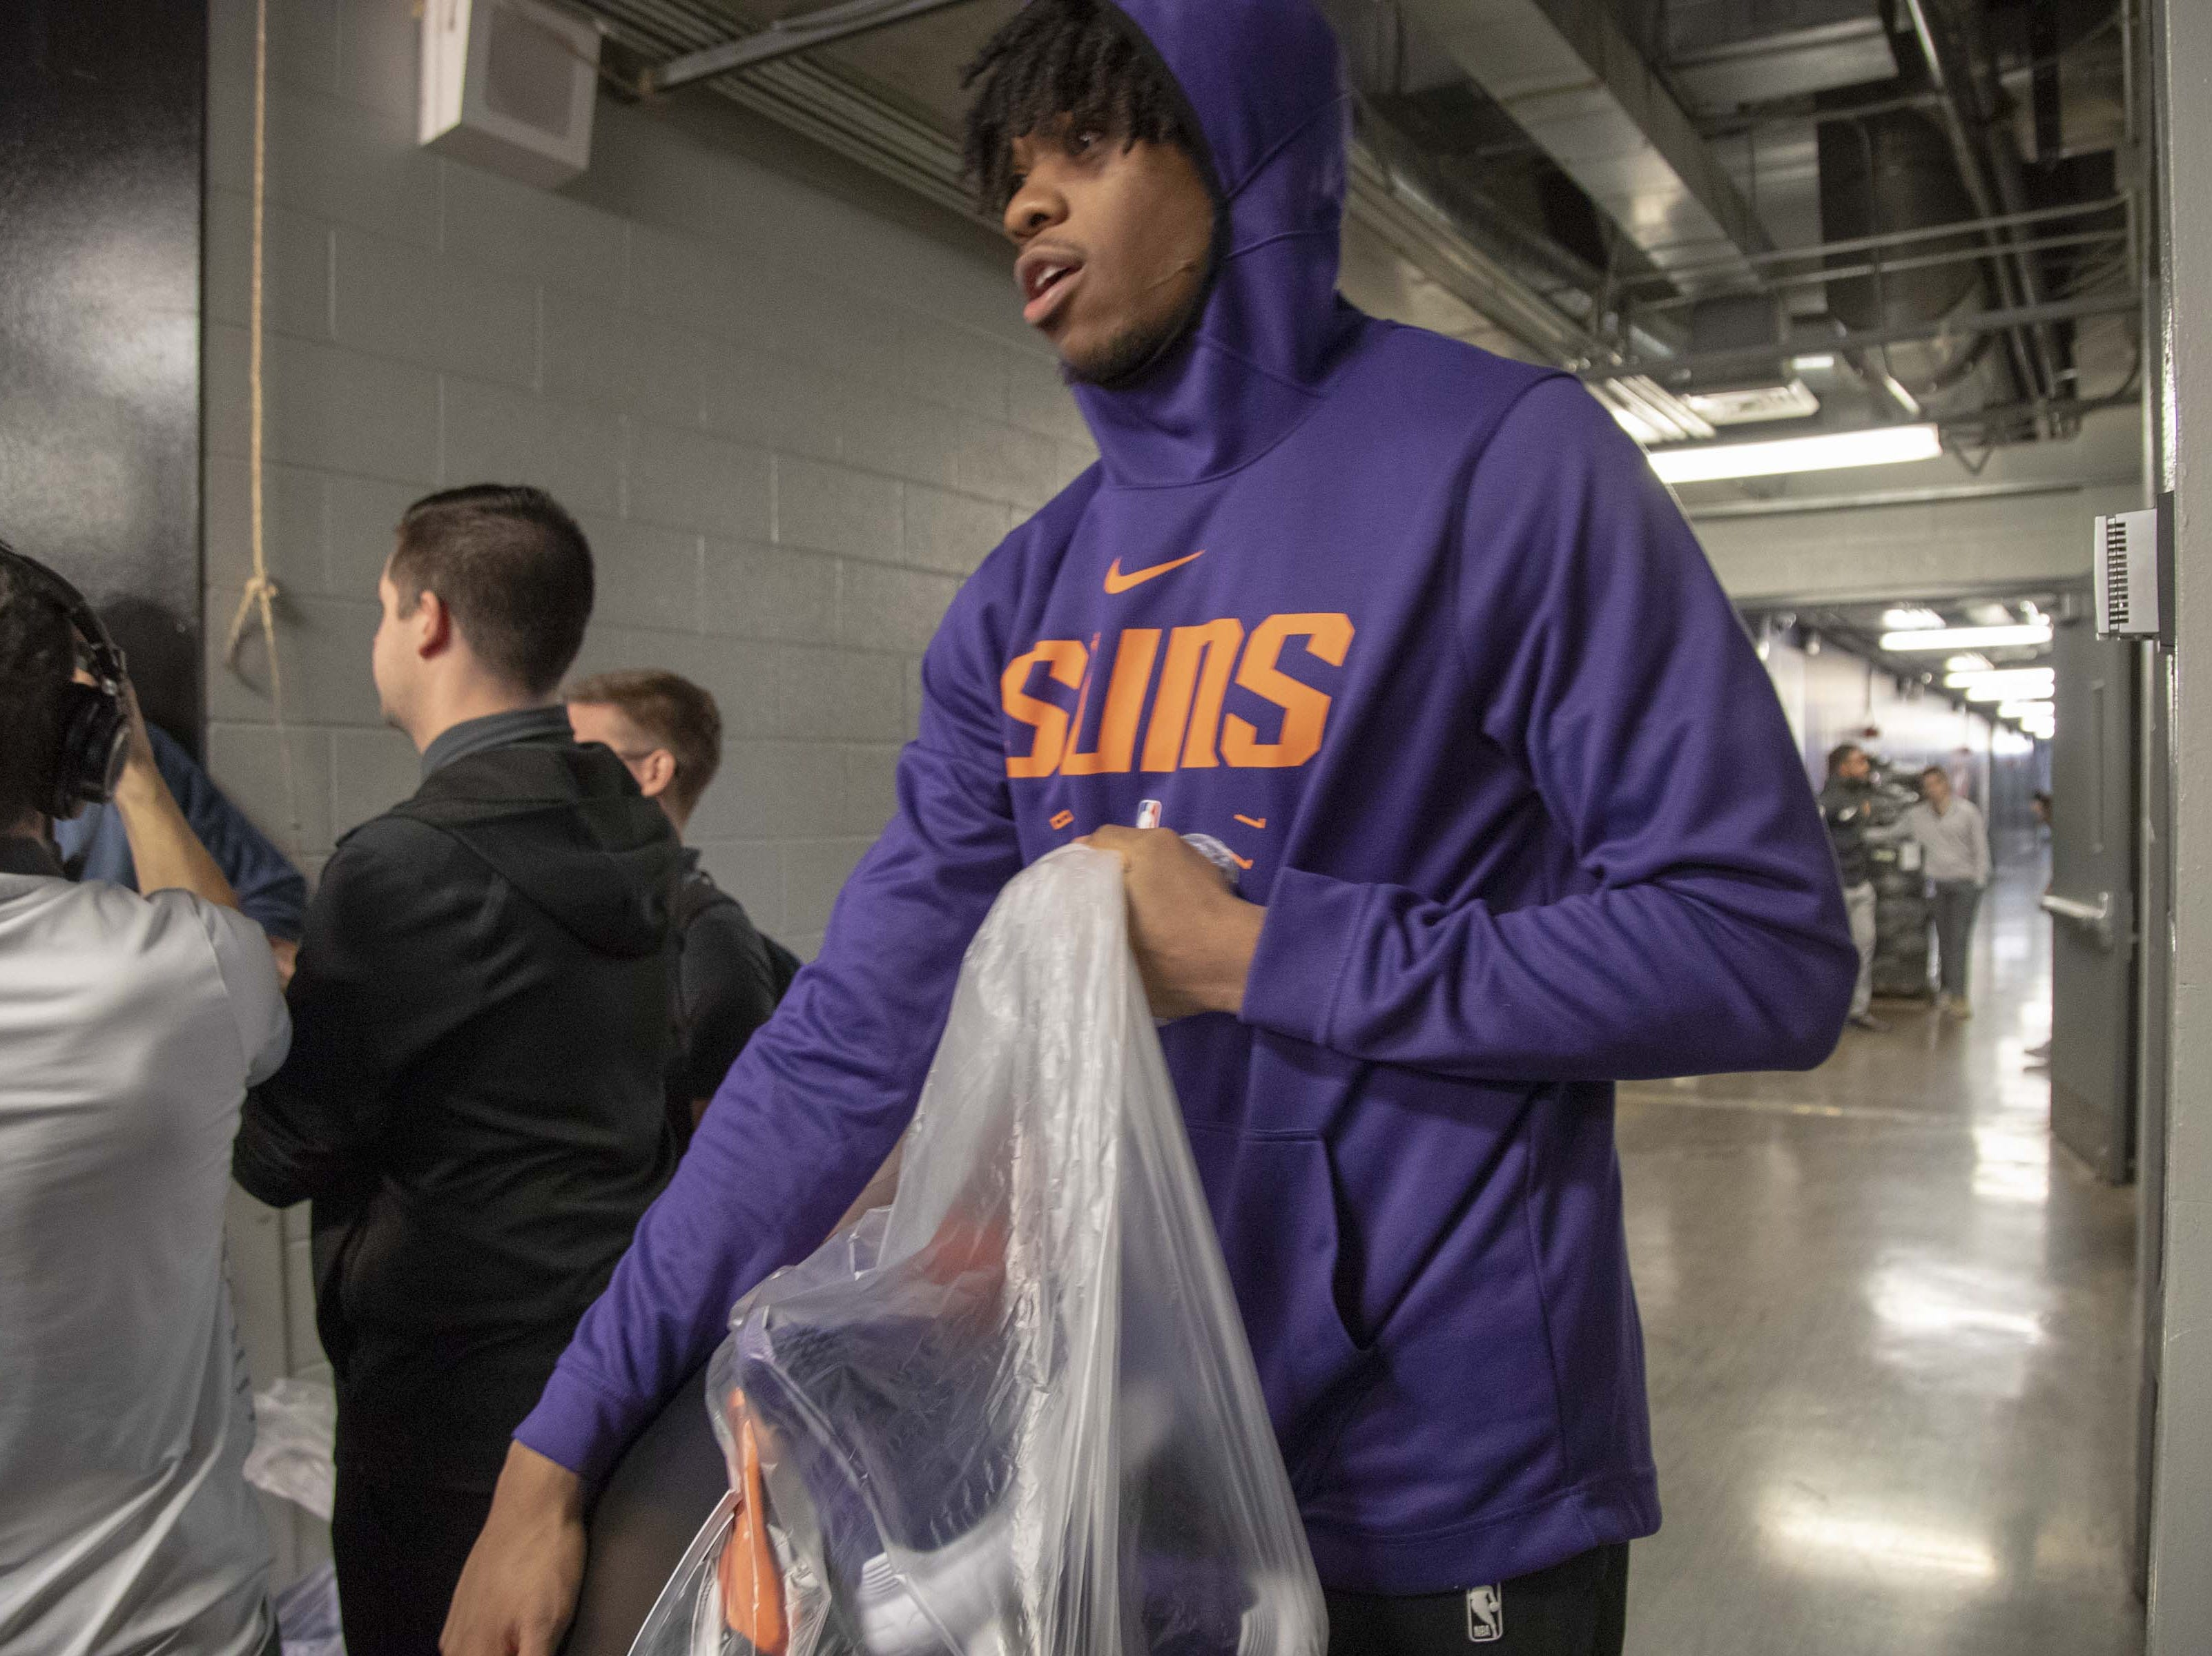 Richaun Holmes averaged 8.2 points per game with 4.7 rebounds with the Suns during the 2018-19 season.